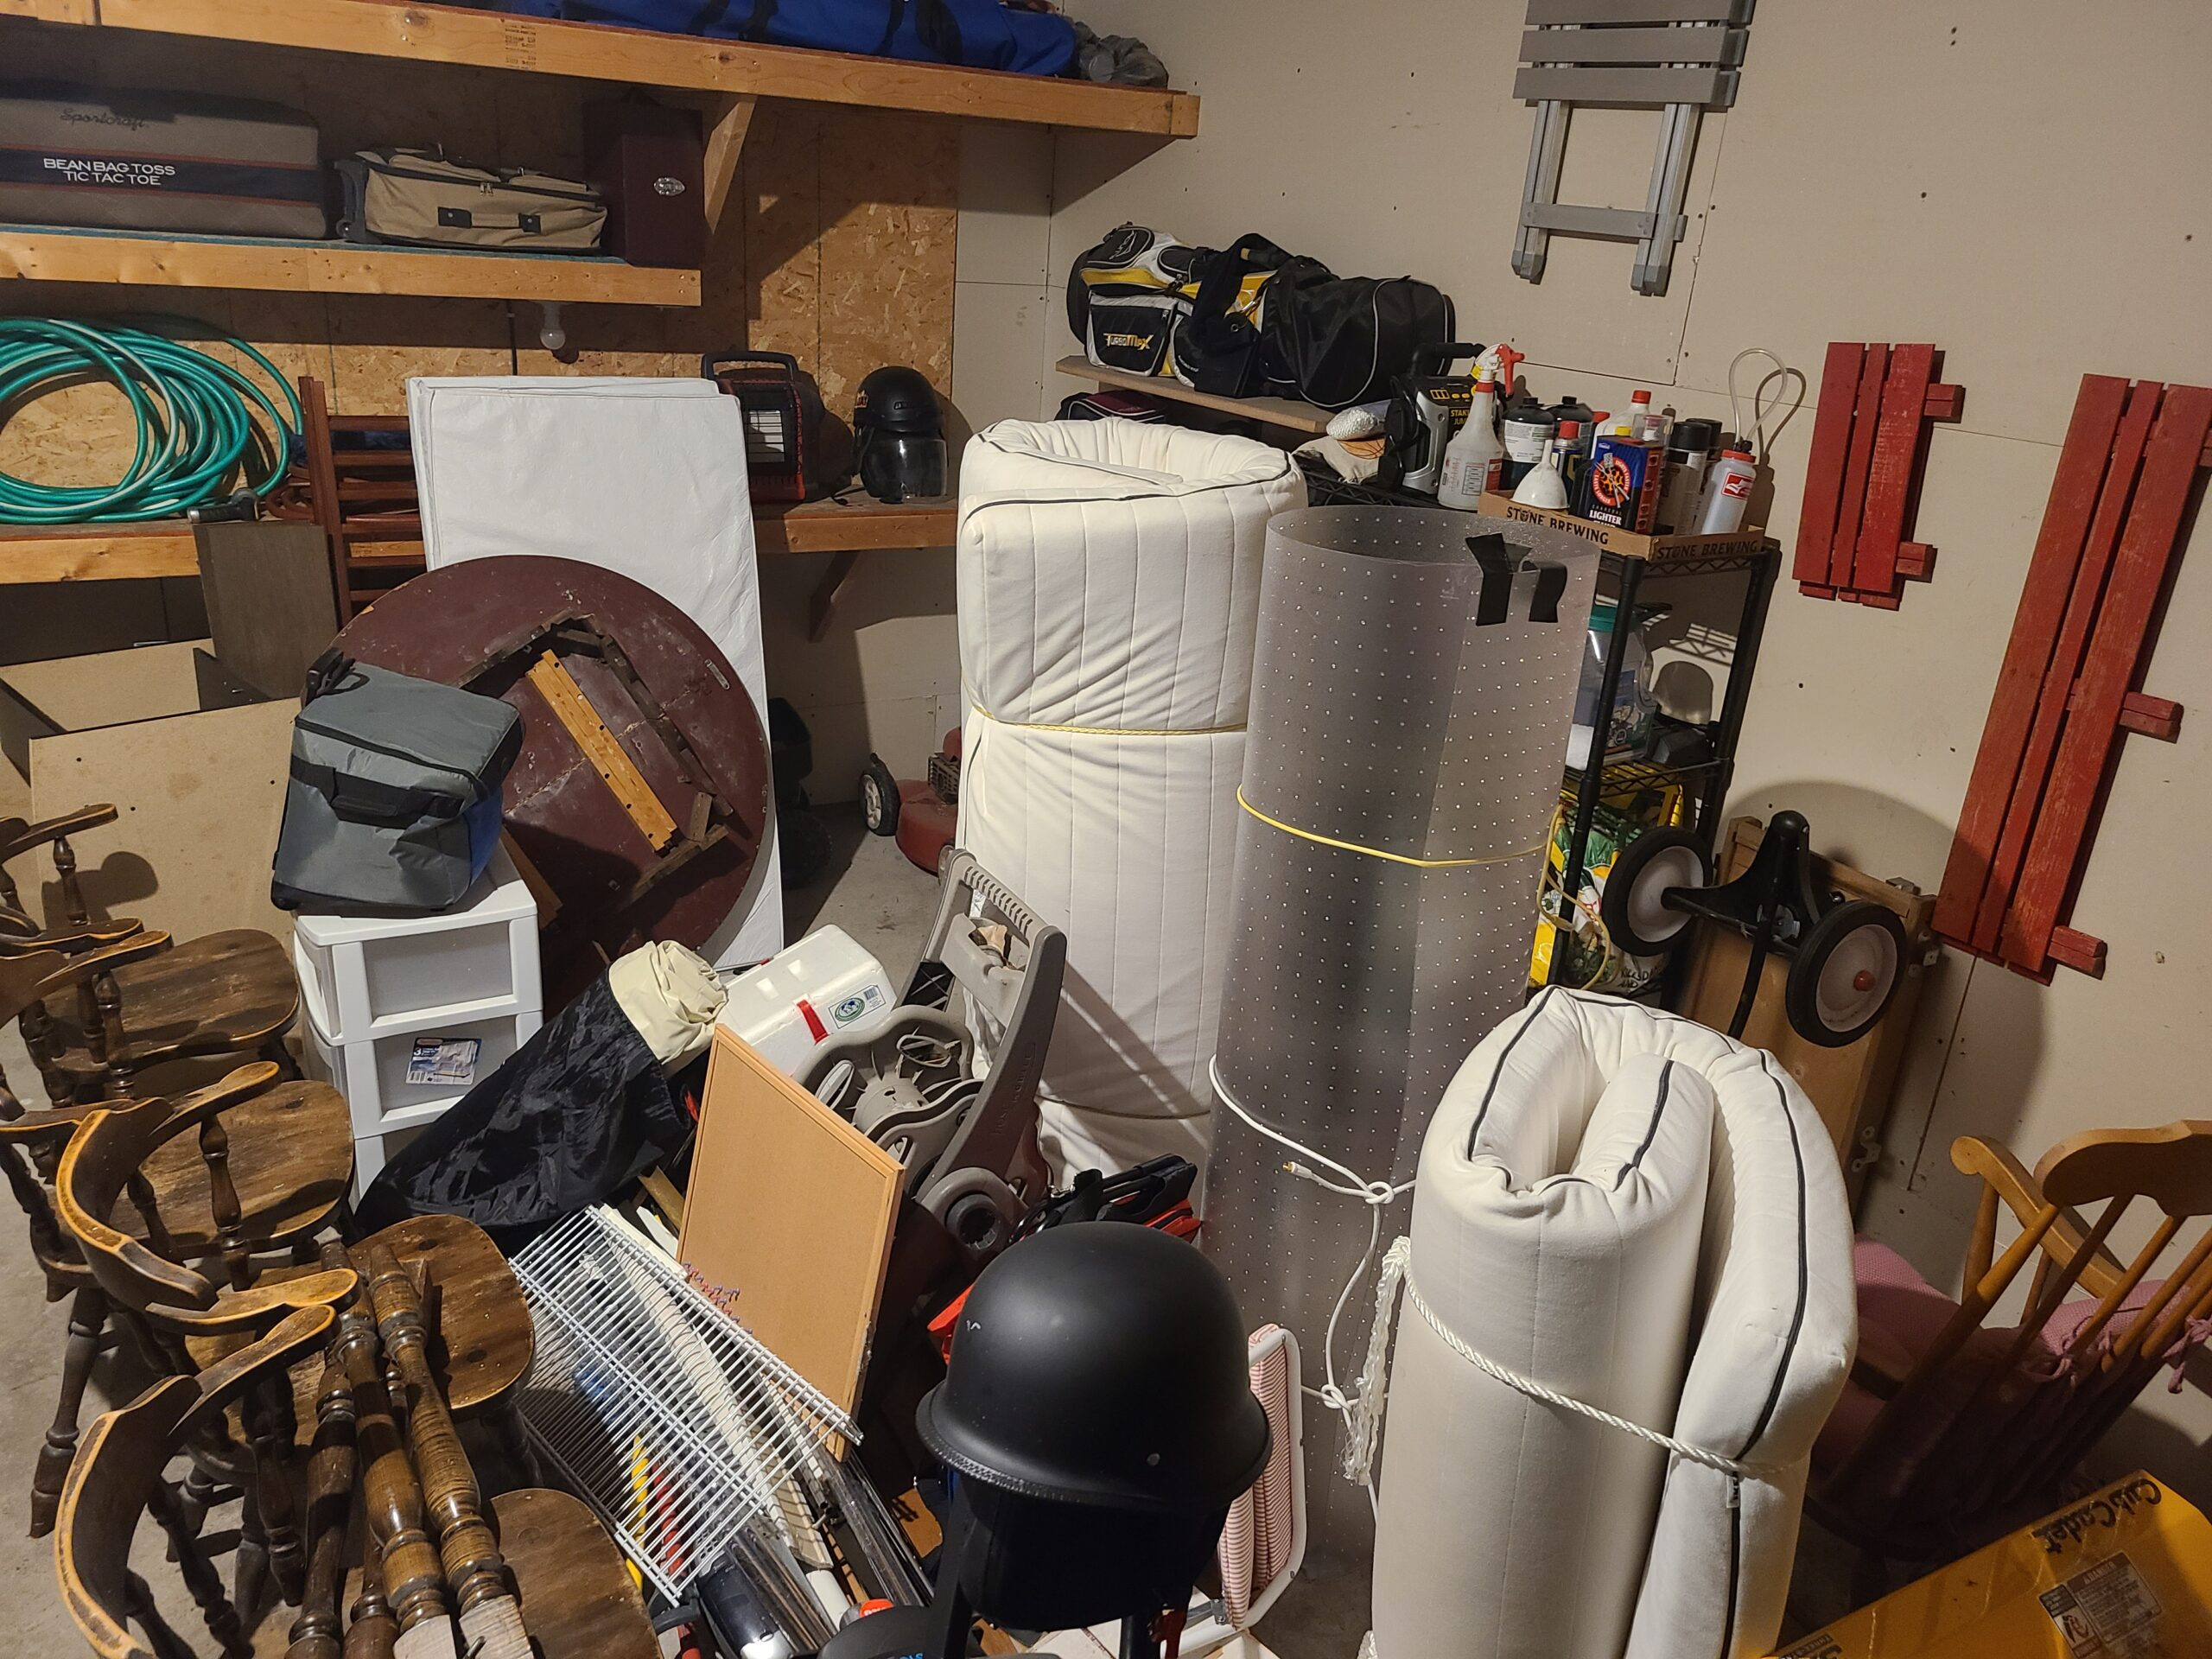 Picture of junk for removal